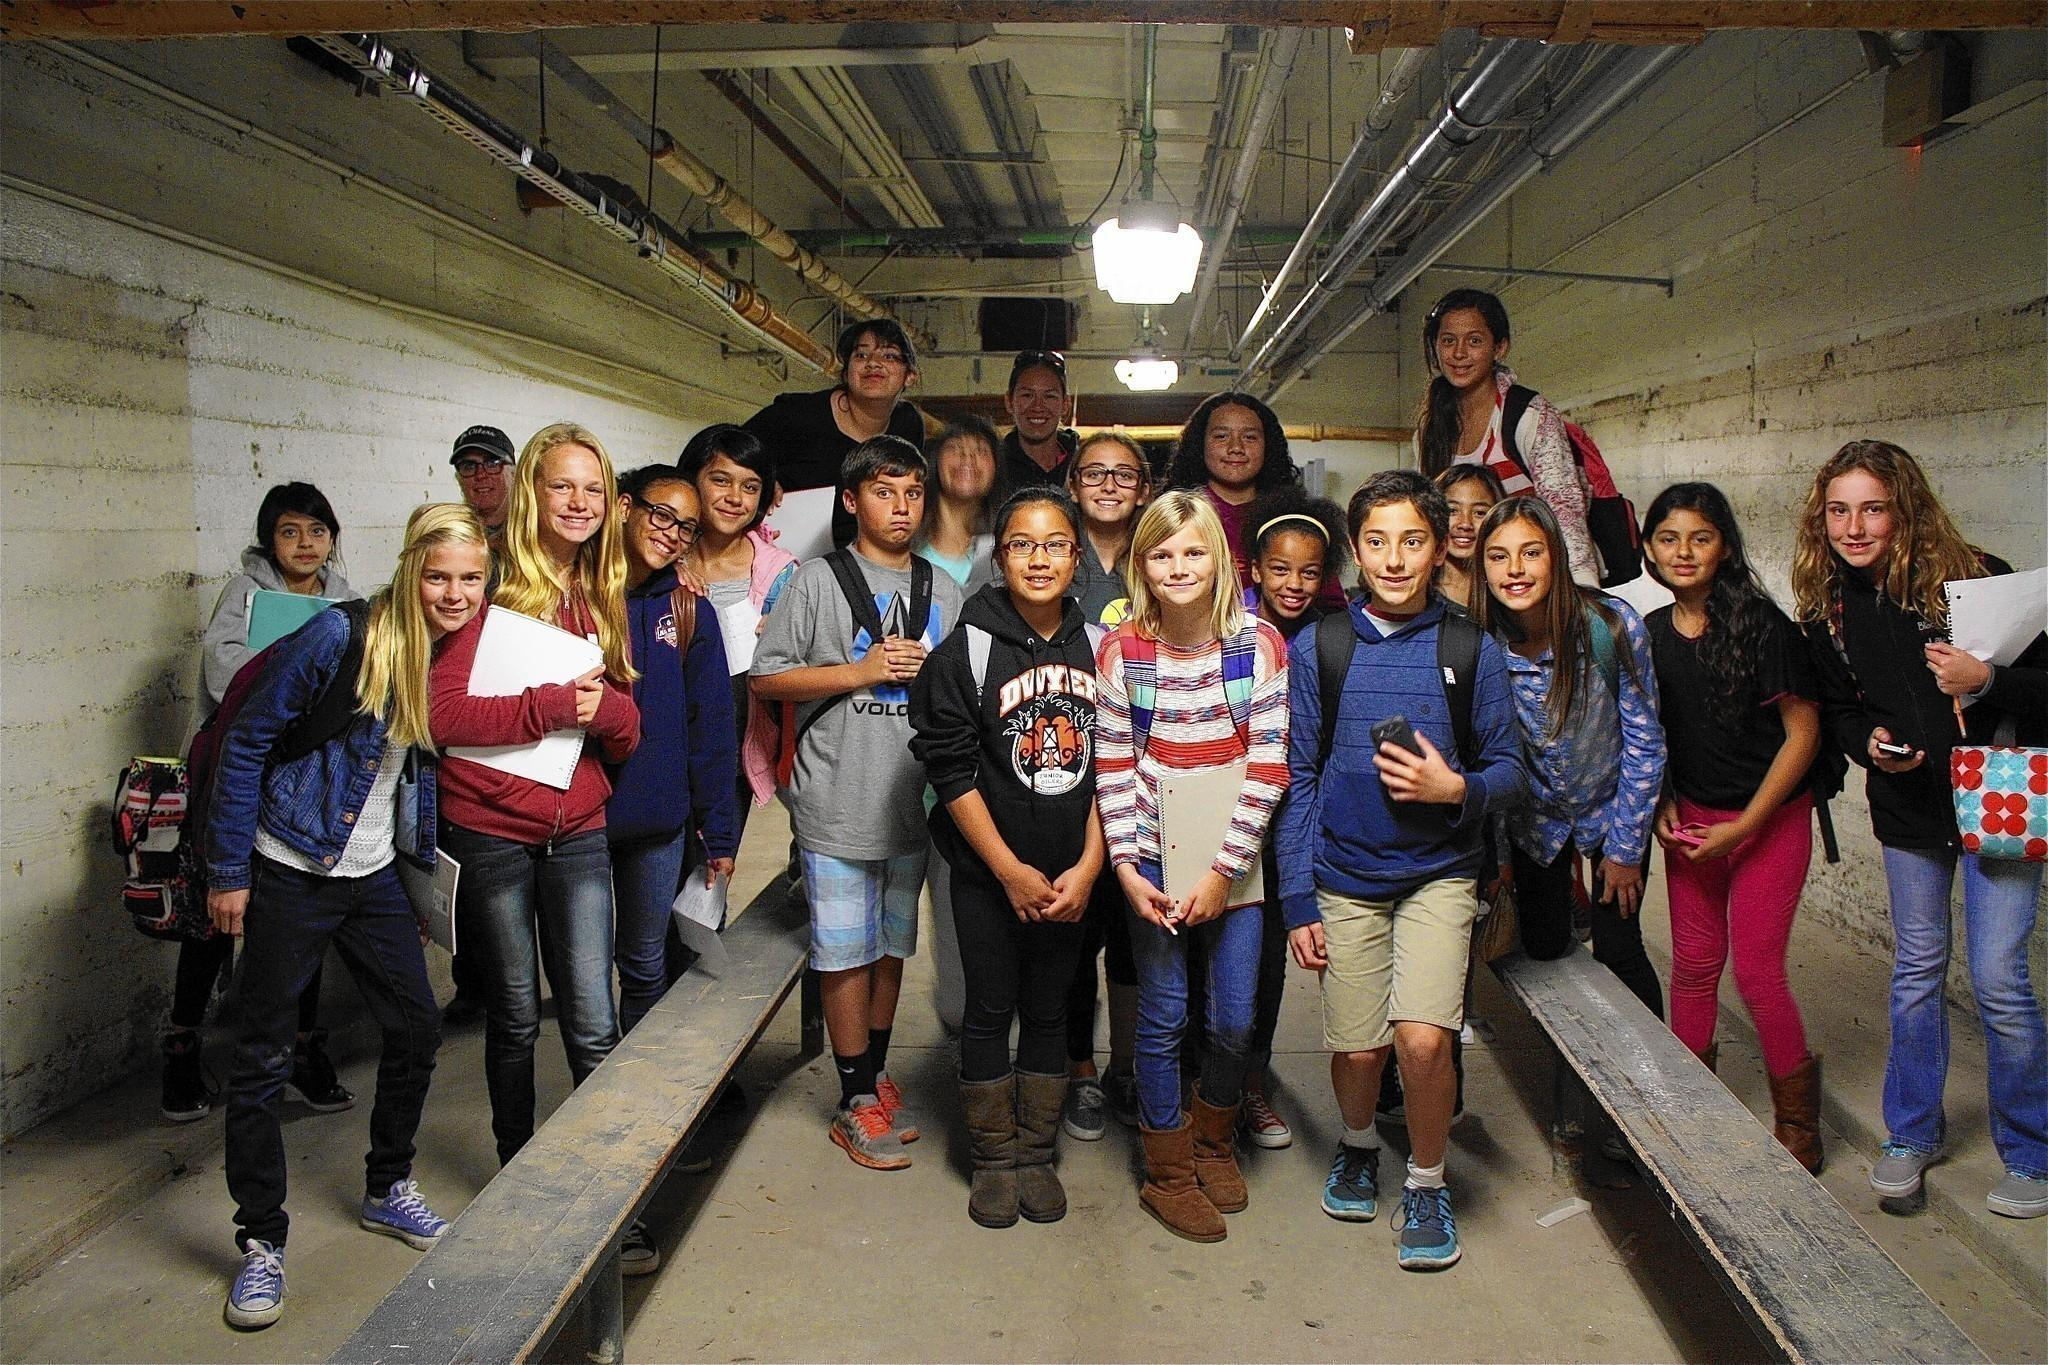 Student from the sixth grade at Dwyer Middle School tour the underground of their school in search of inspiration (and possibly Ethel Dwyer's ghost).